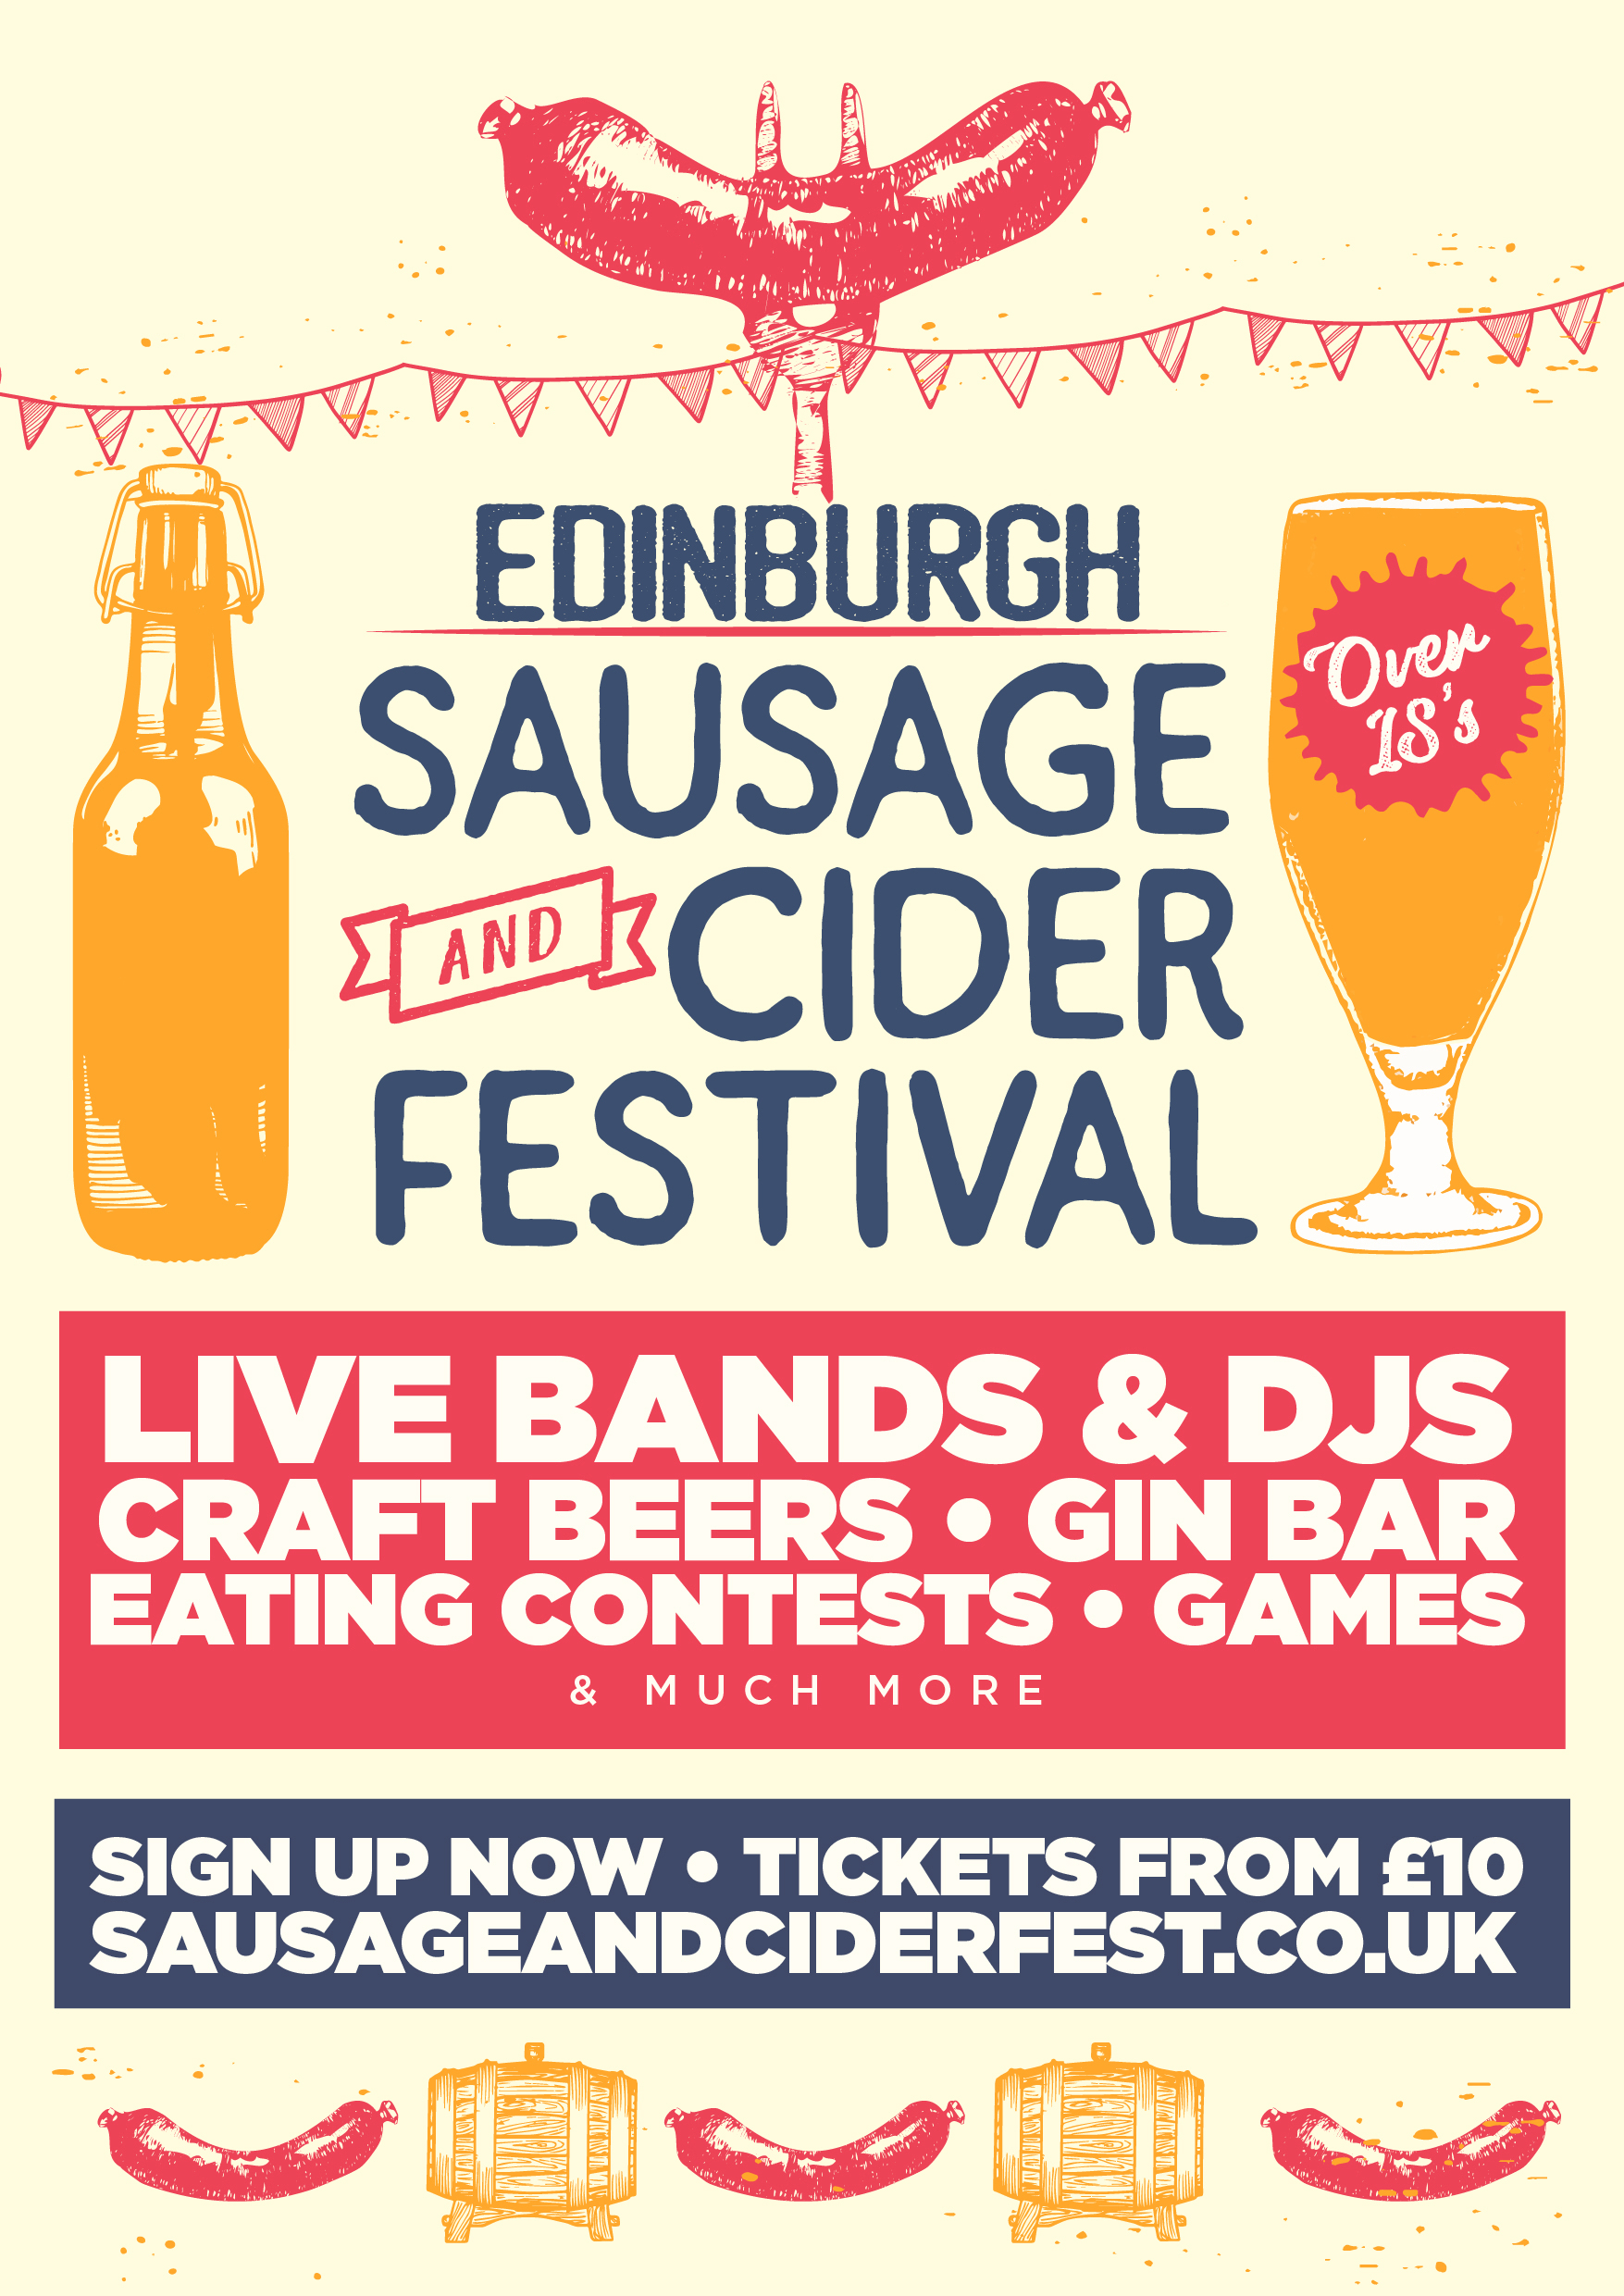 Sausage and Cider FINAL Edinburgh.jpg